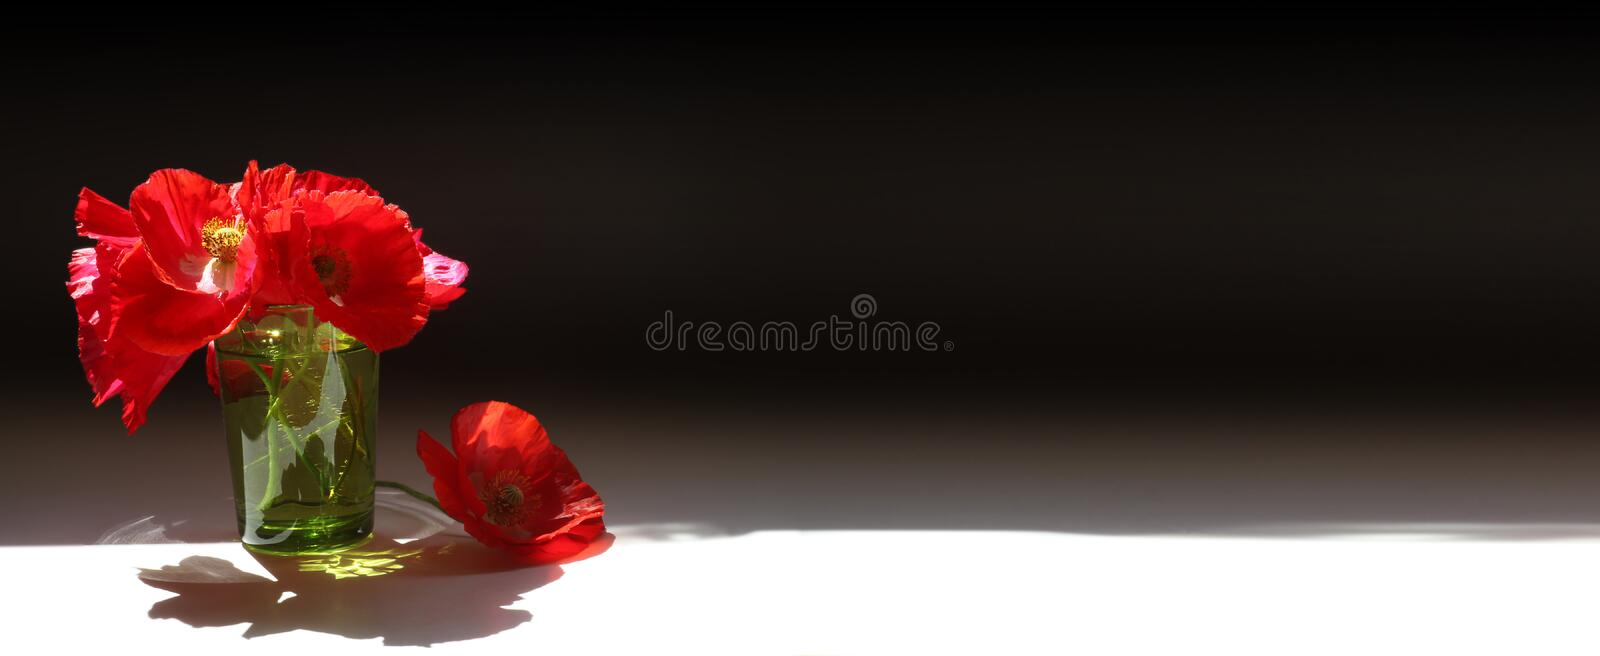 Red poppies banner. Three red poppies, two in a transparent green glass with water on a dark black background with bright white light foreground and plenty of stock images